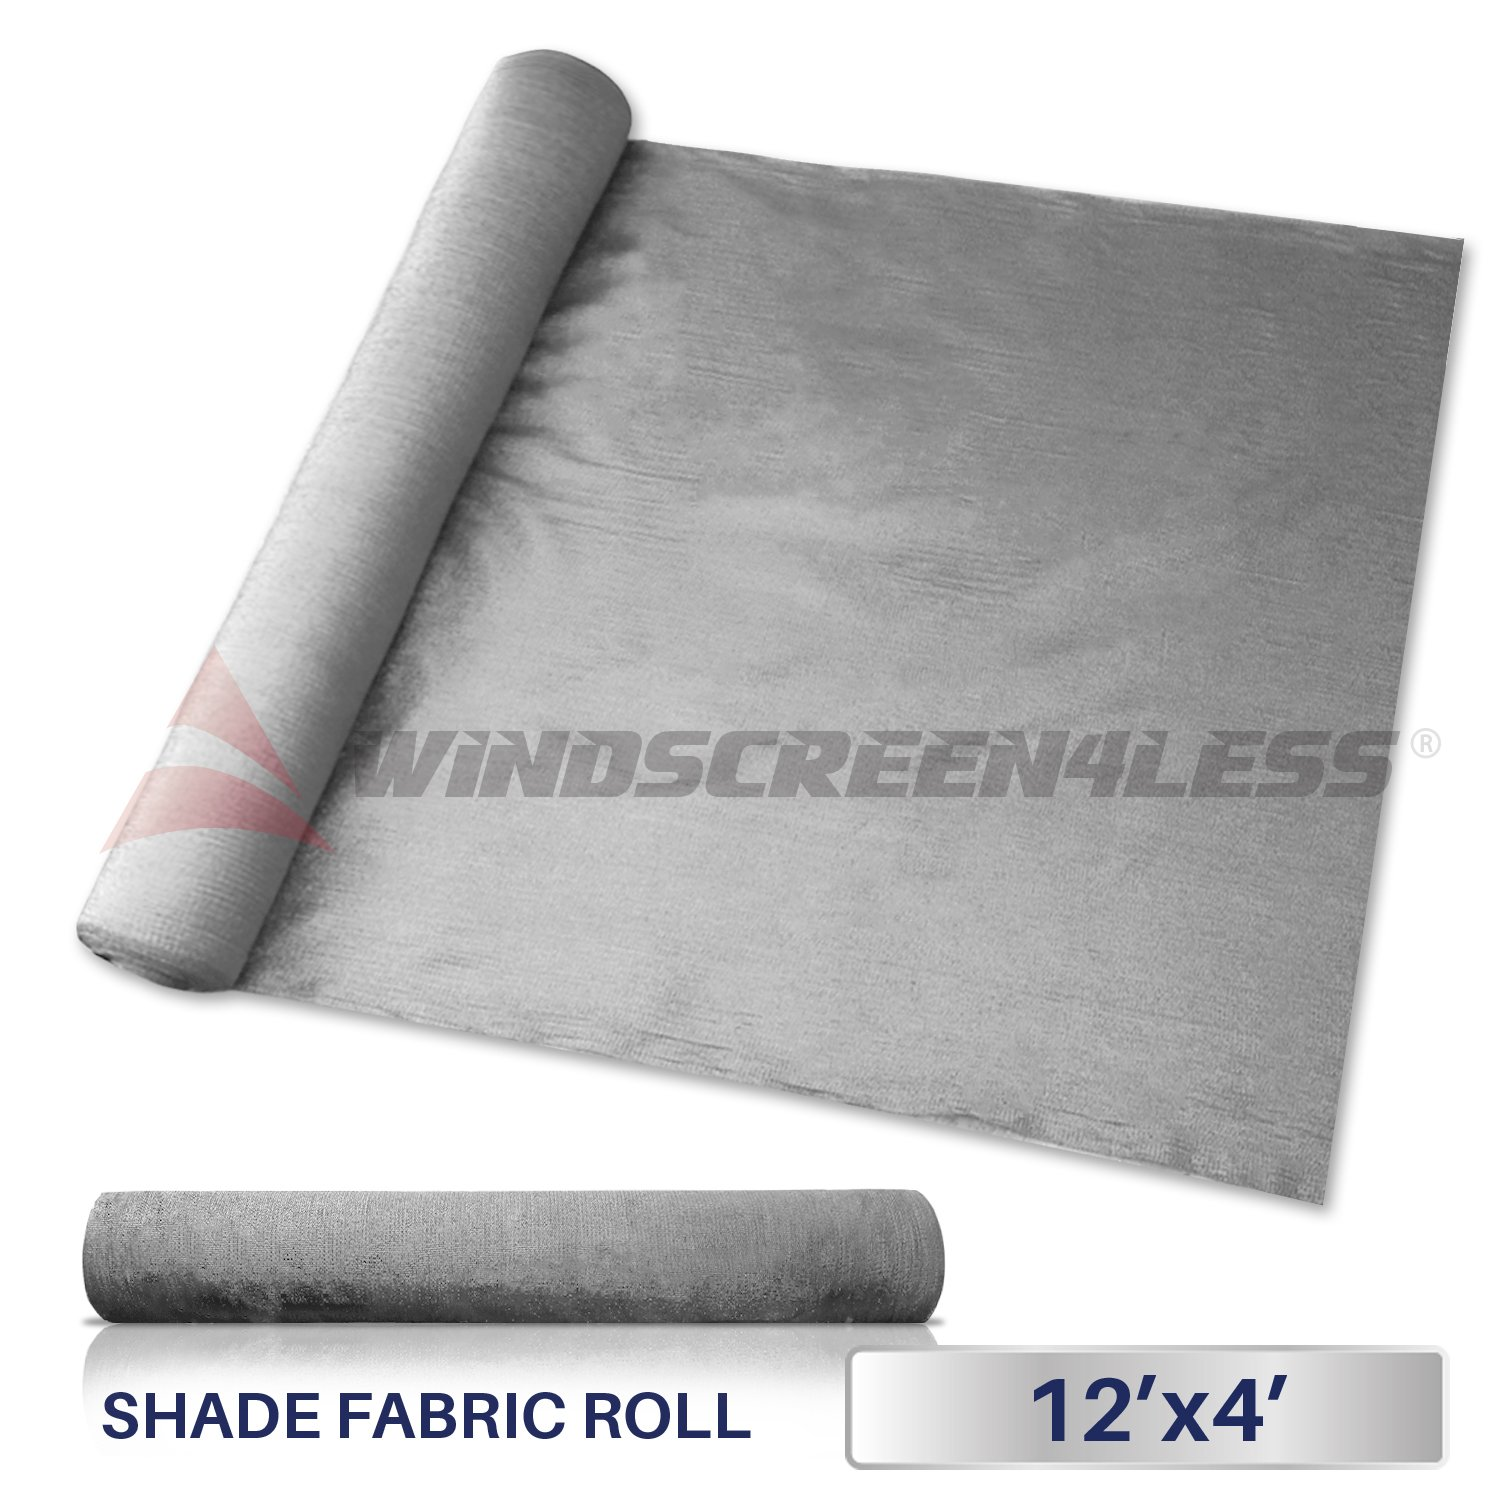 Windscreen4less Light Grey Sunblock Shade Cloth,95% UV Block Shade Fabric Roll 12ft x 4ft